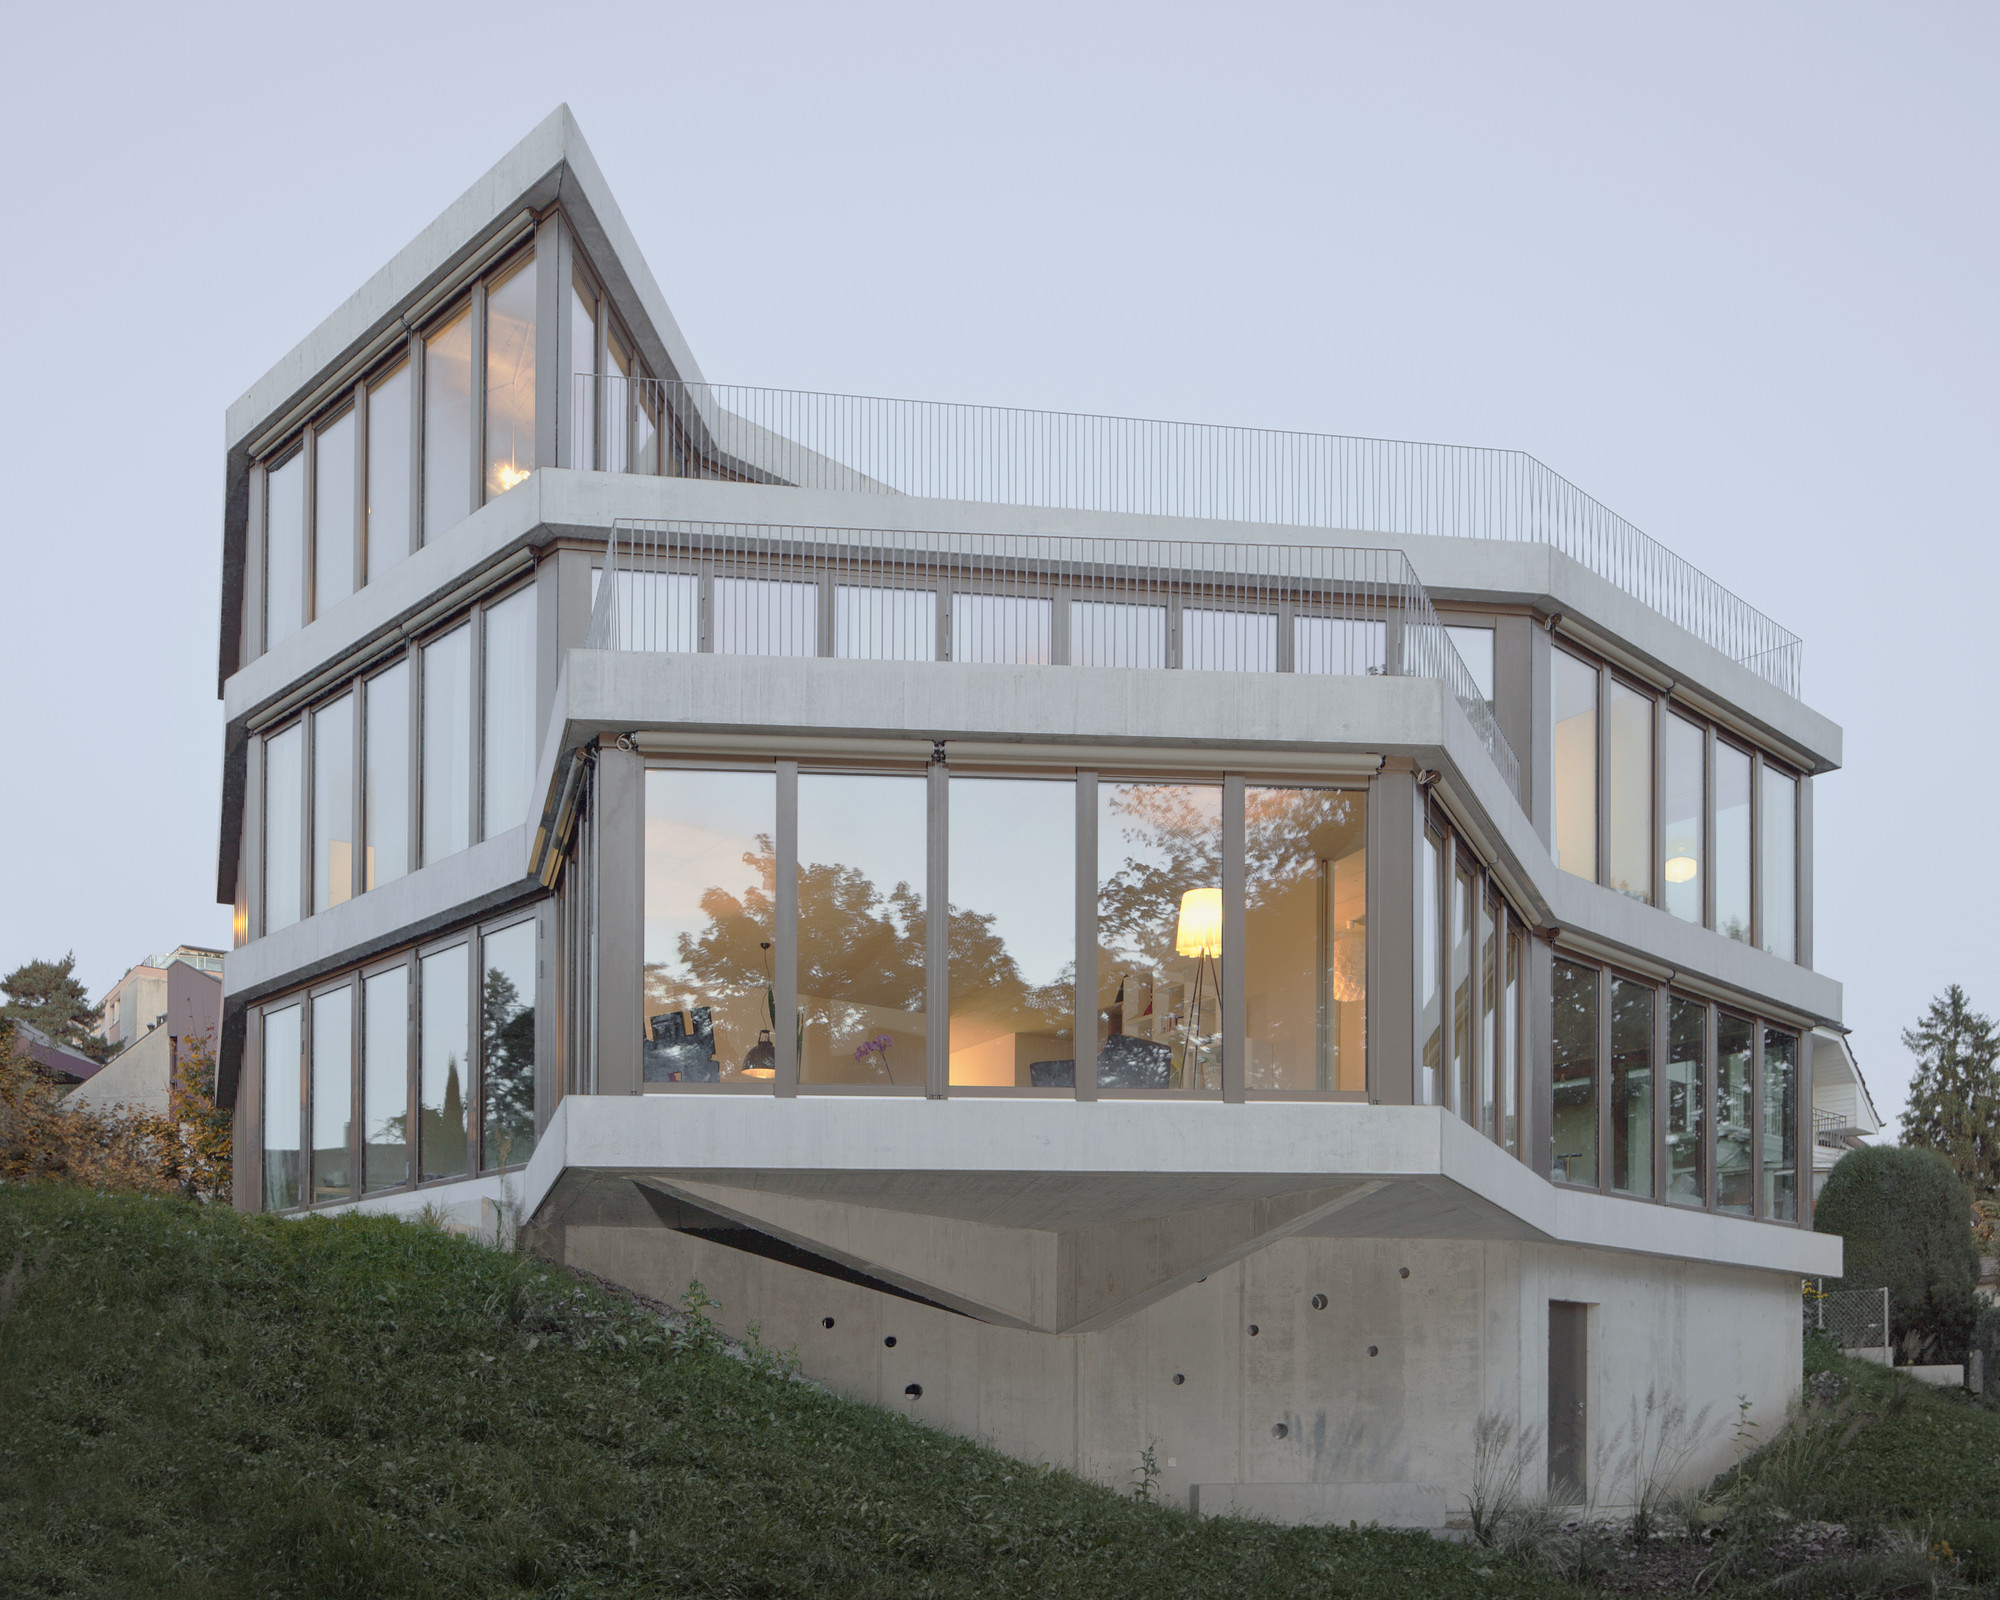 Housing in Chailly / LOCALARCHITECTURE, © Mathieu Gafsou